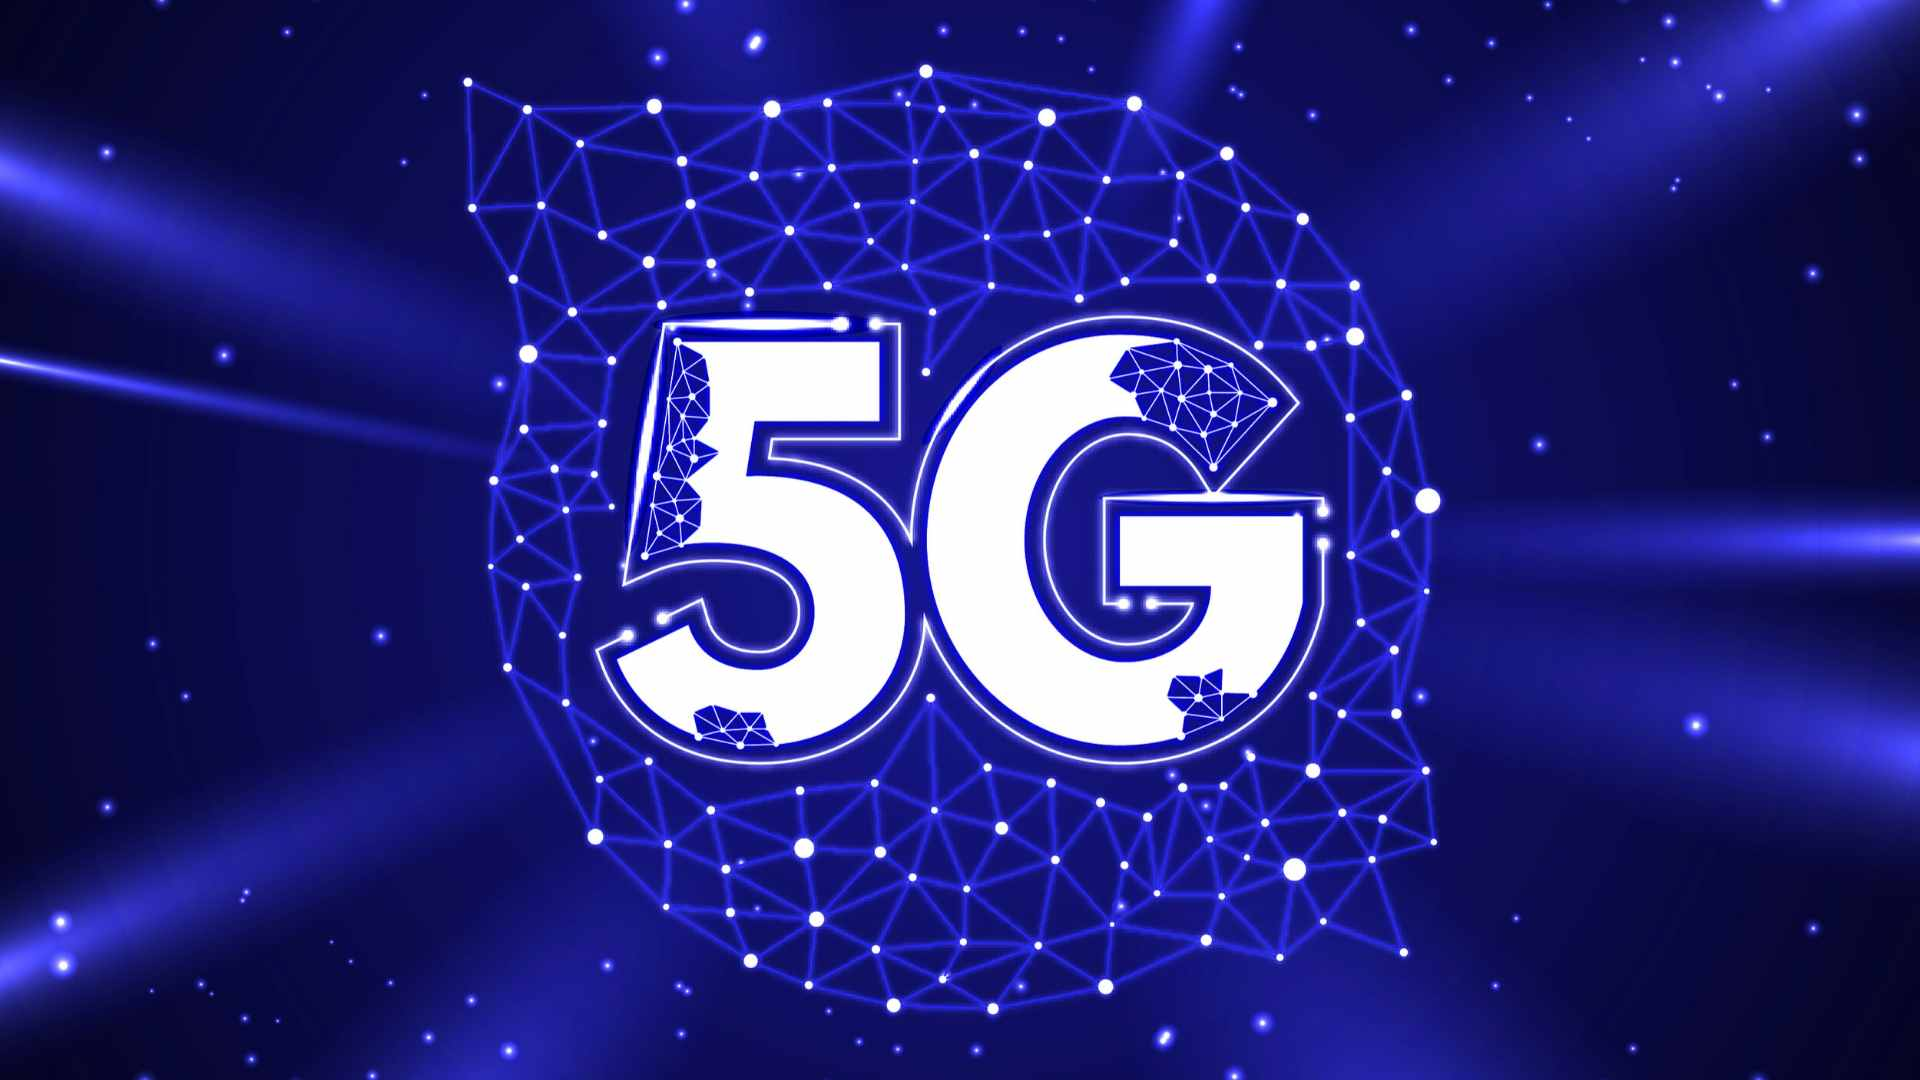 Japan Gives Approval to Bill for Firms to Make 5G